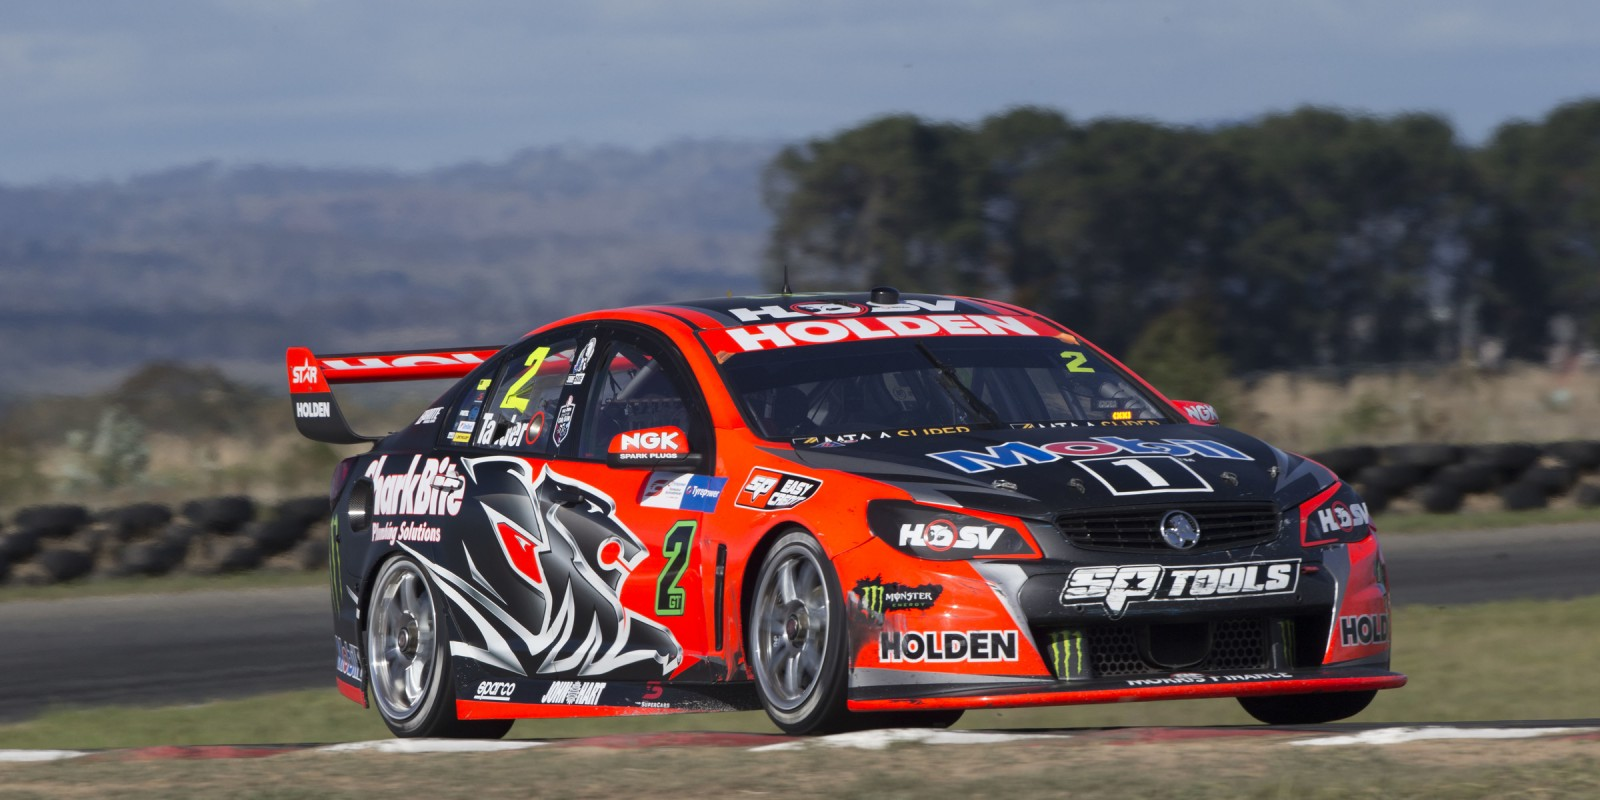 Holden Race Team's Garth Tander at the 2016 V8 Supercars Race in Symmons Plains